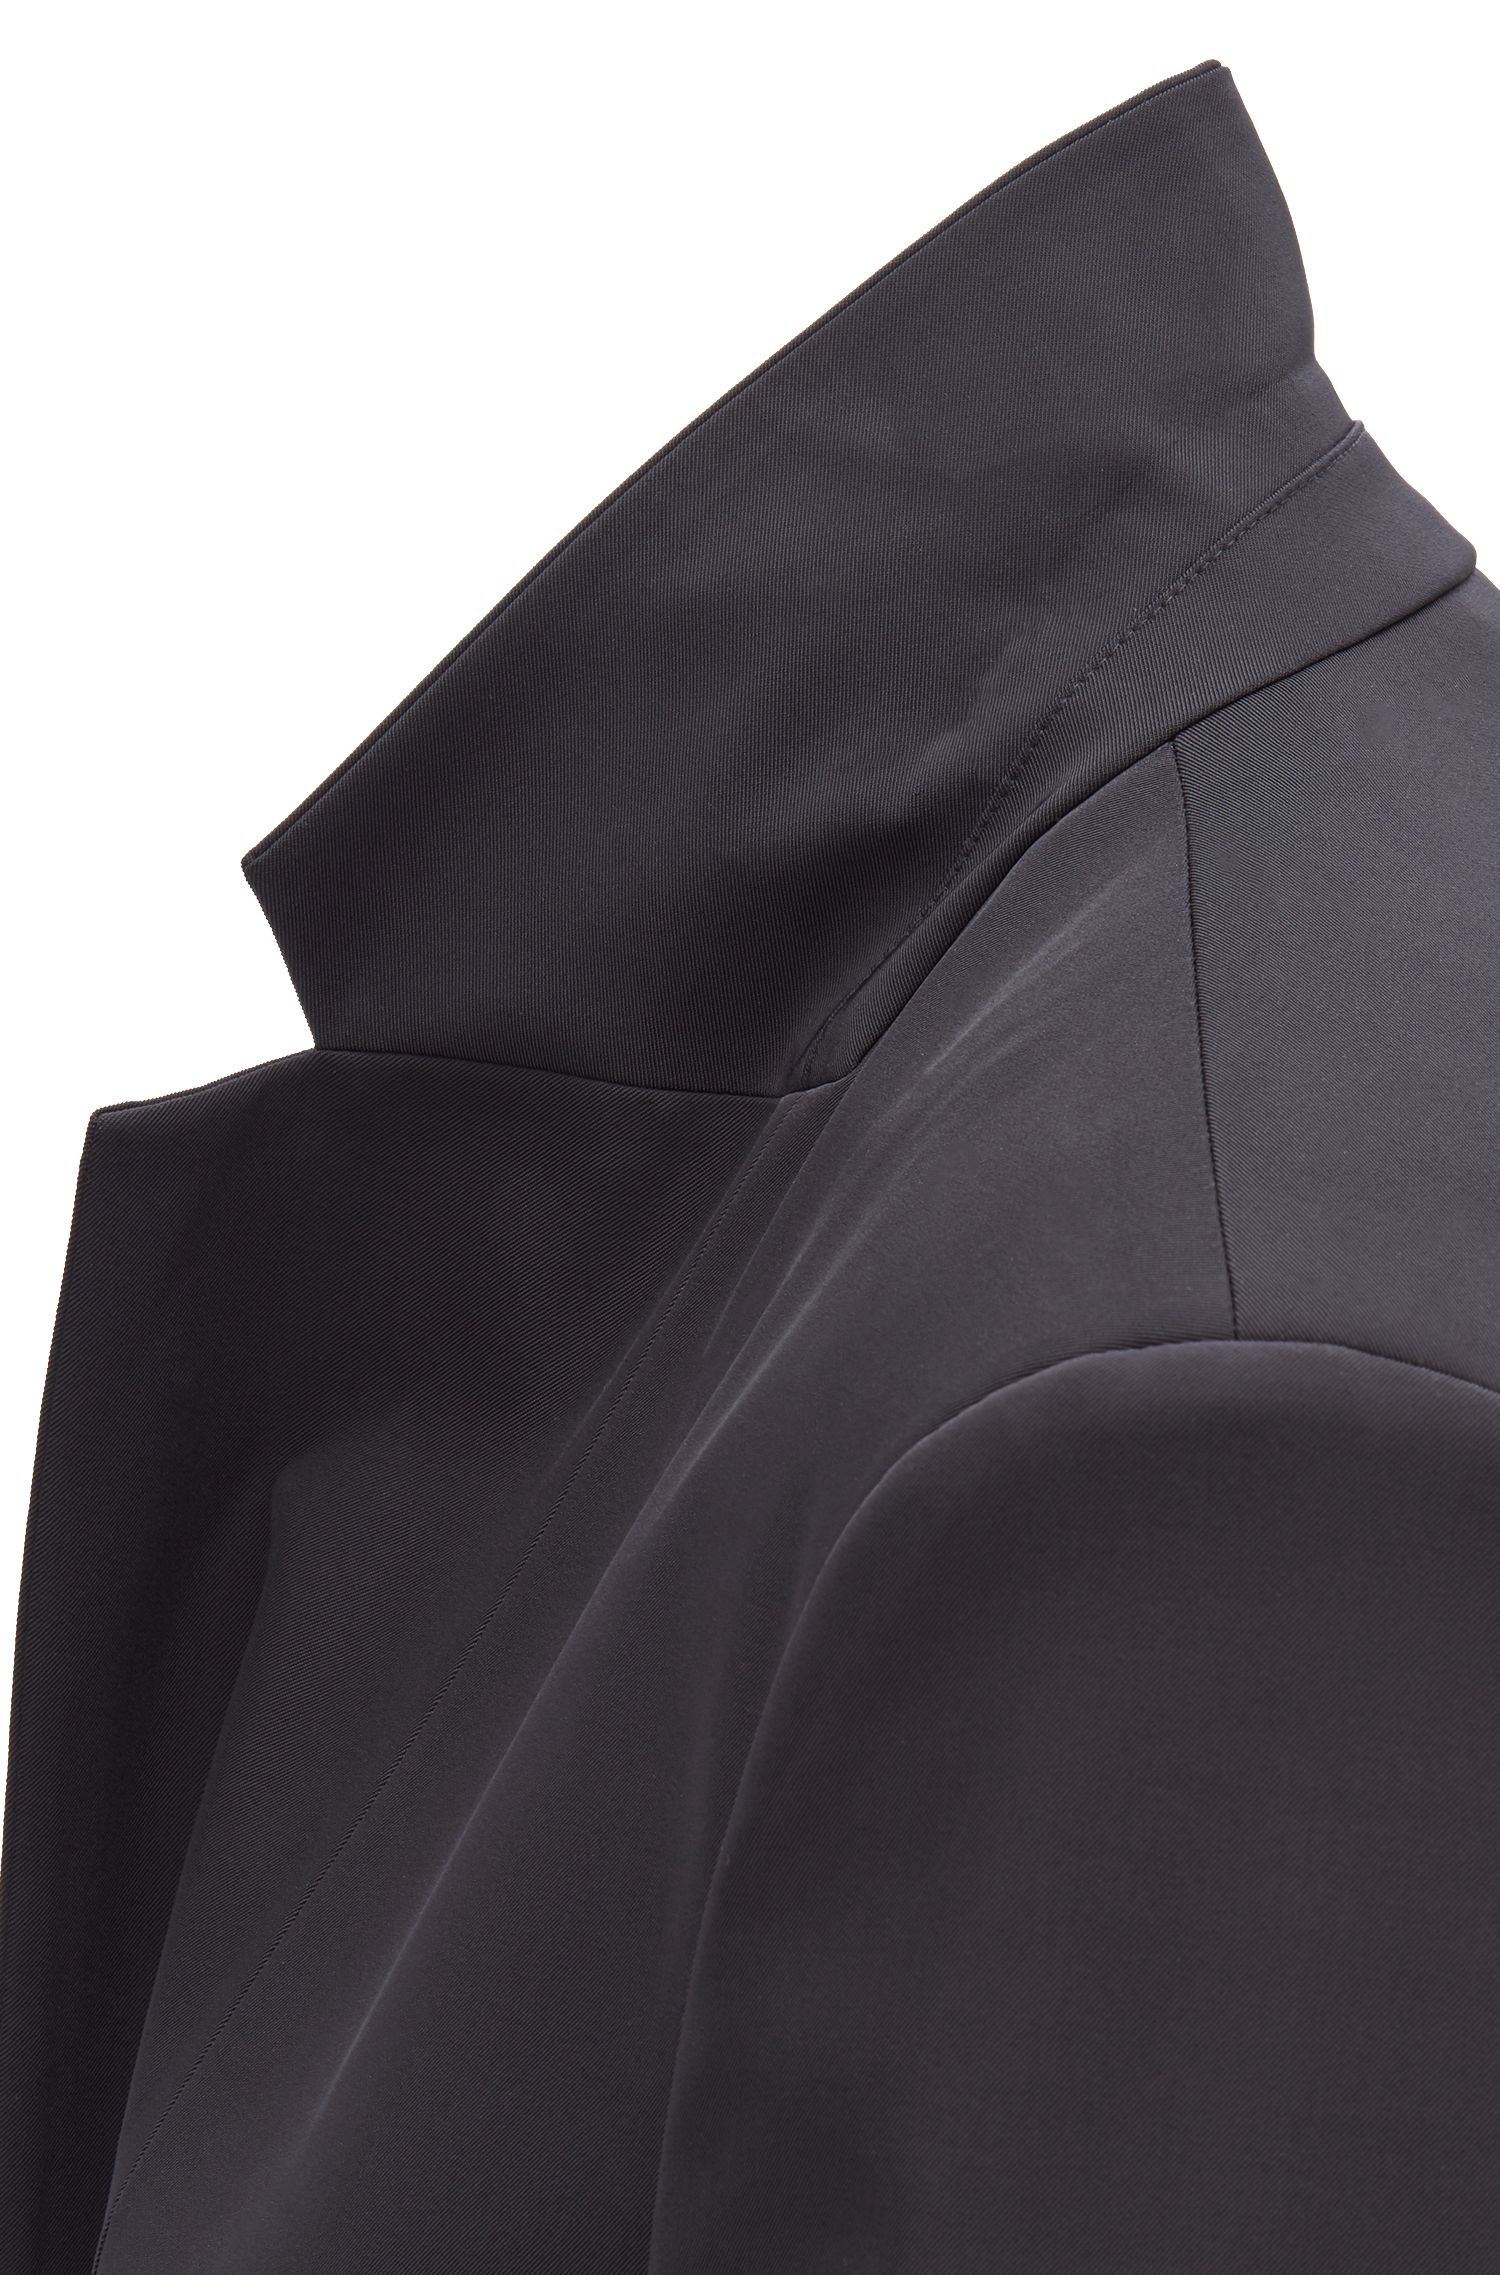 Fashion Show relaxed-fit jacket in Italian stretch fabric, Dark Blue